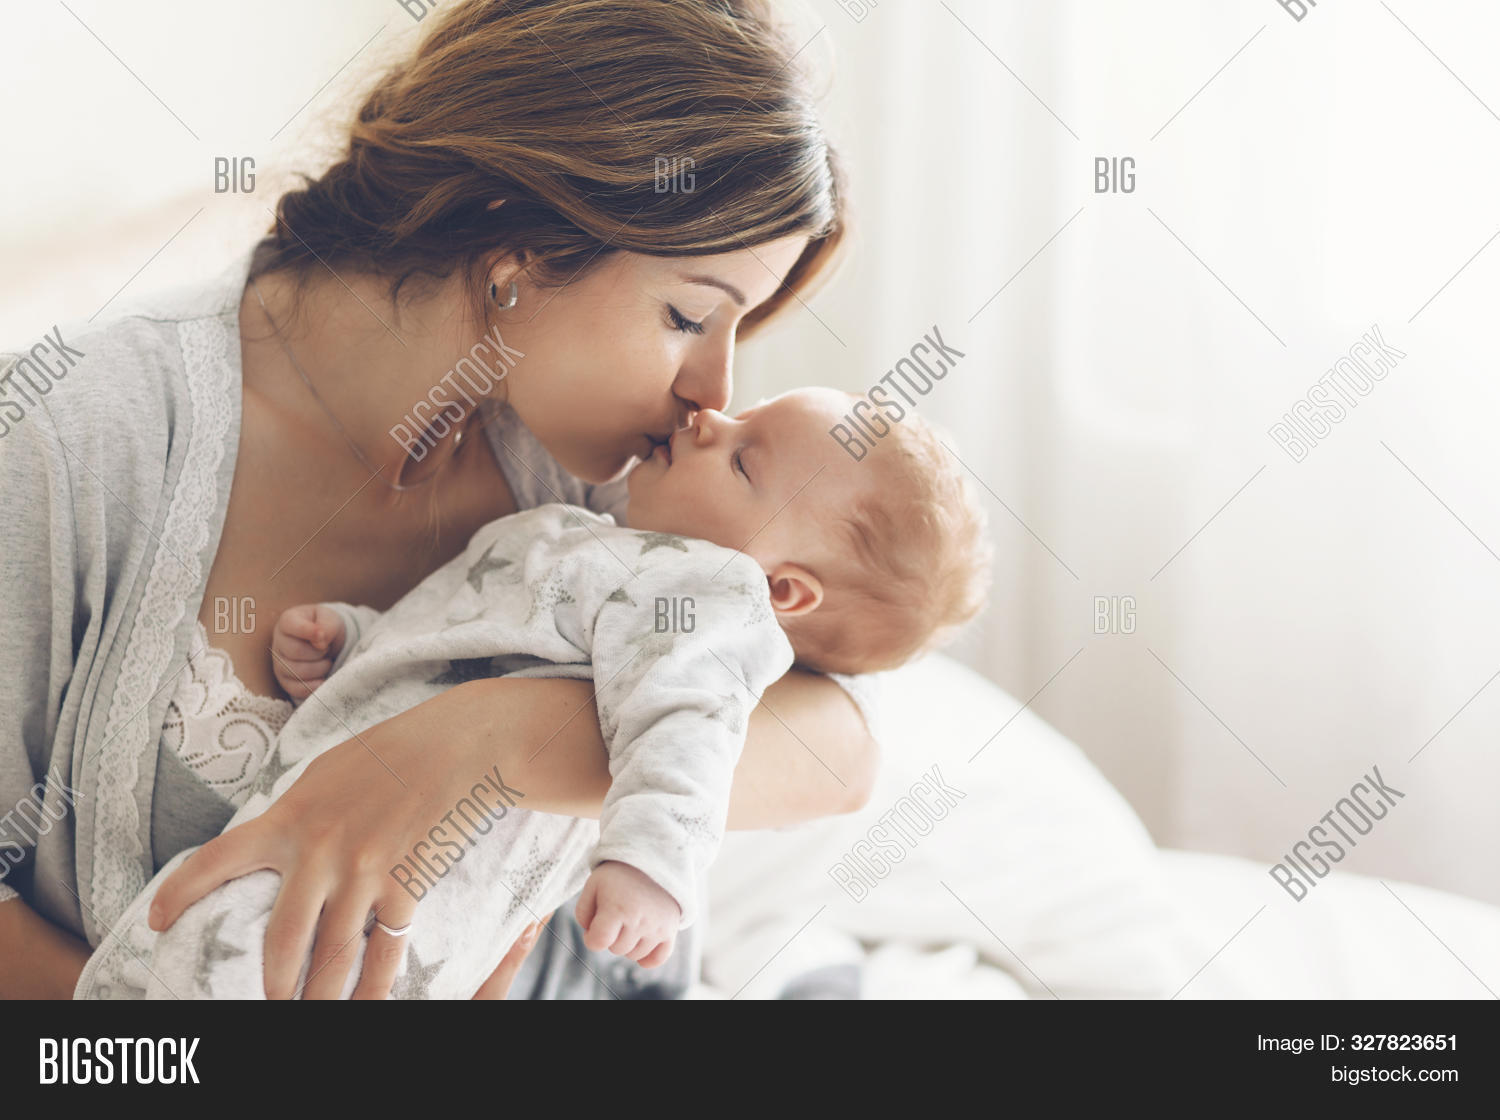 Loving Mom Carying Her Image Photo Free Trial Bigstock